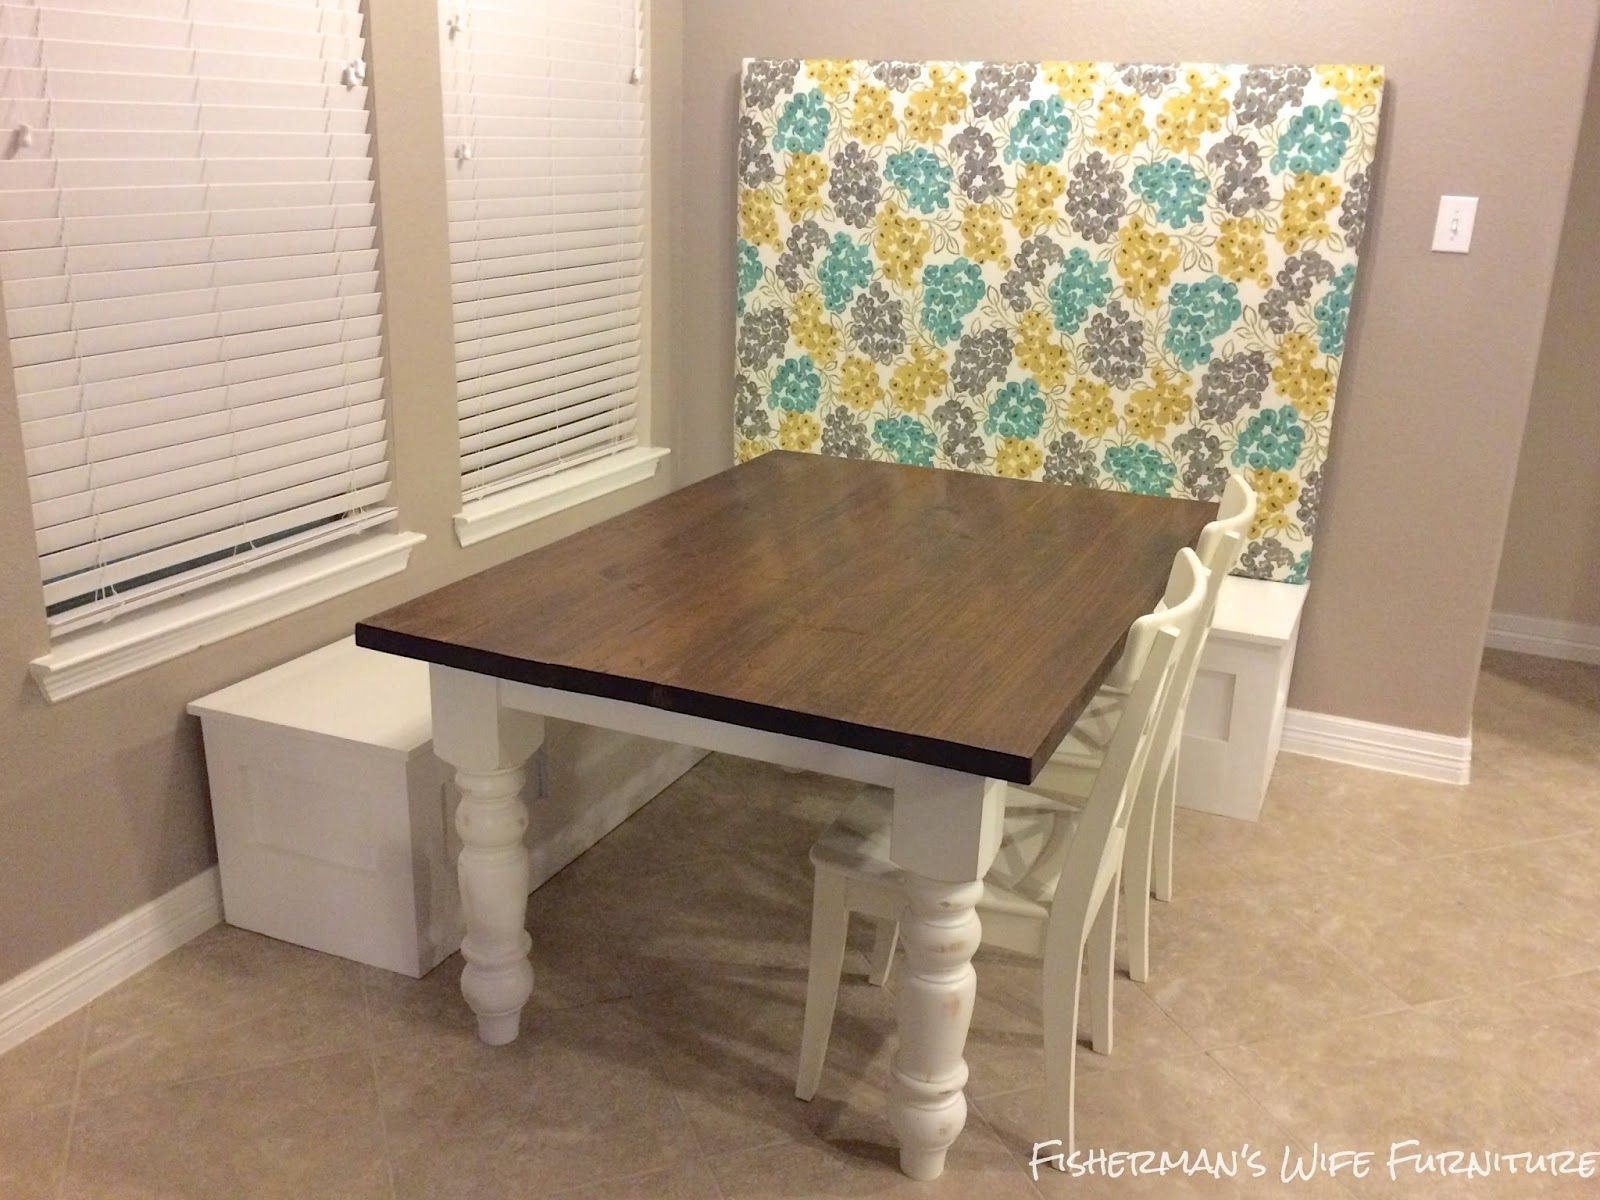 banquette dining room furniture. Banquette Seating And Rustic Dining Room Table Furniture